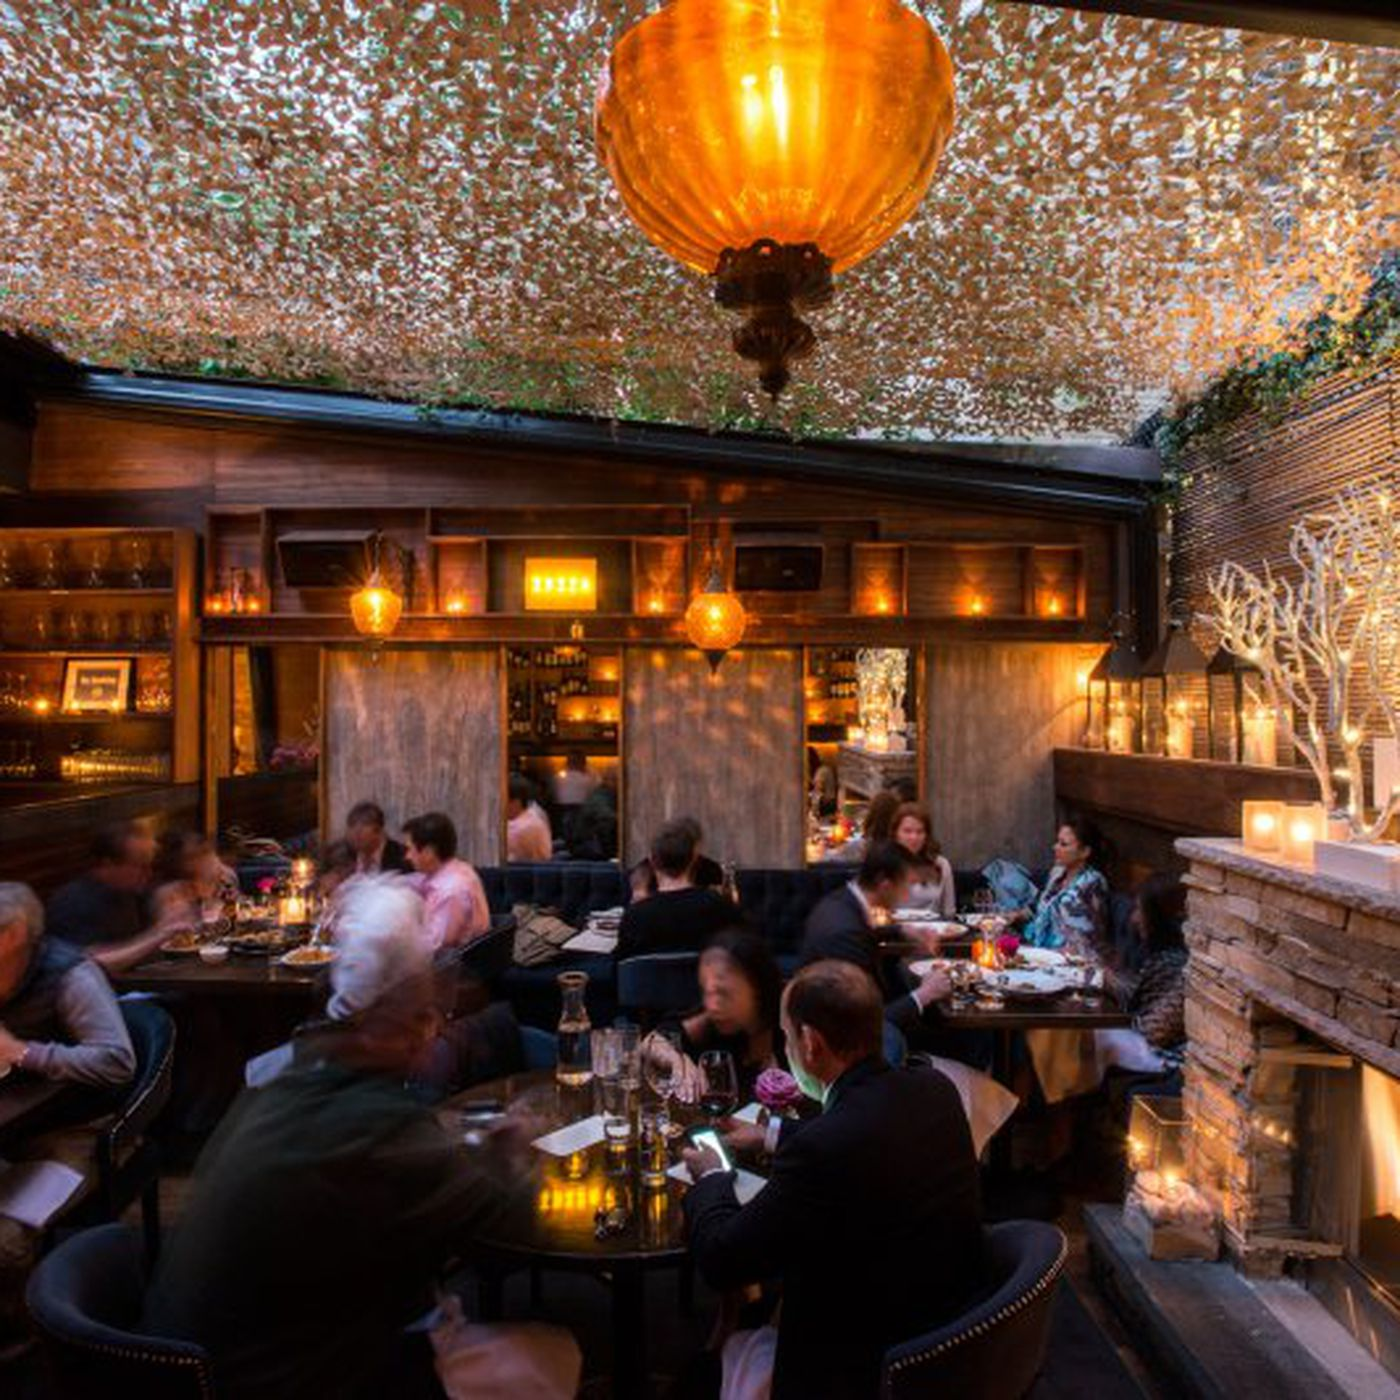 Solid Nyc Restaurants With Fireplaces